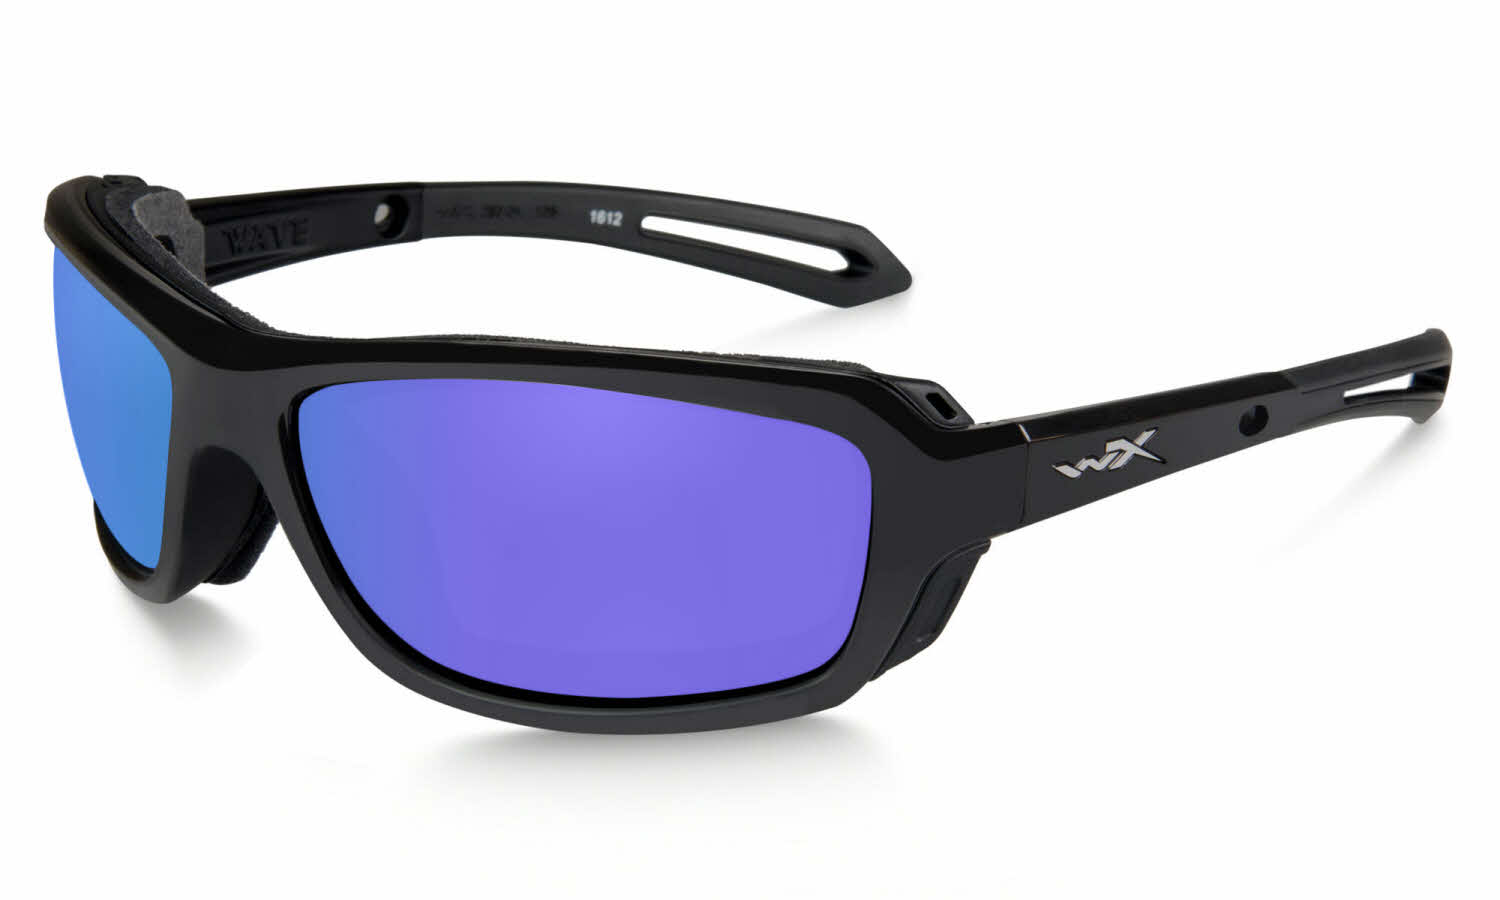 b710bd7d0b0a Wiley X WX Wave Prescription Sunglasses | Free Shipping